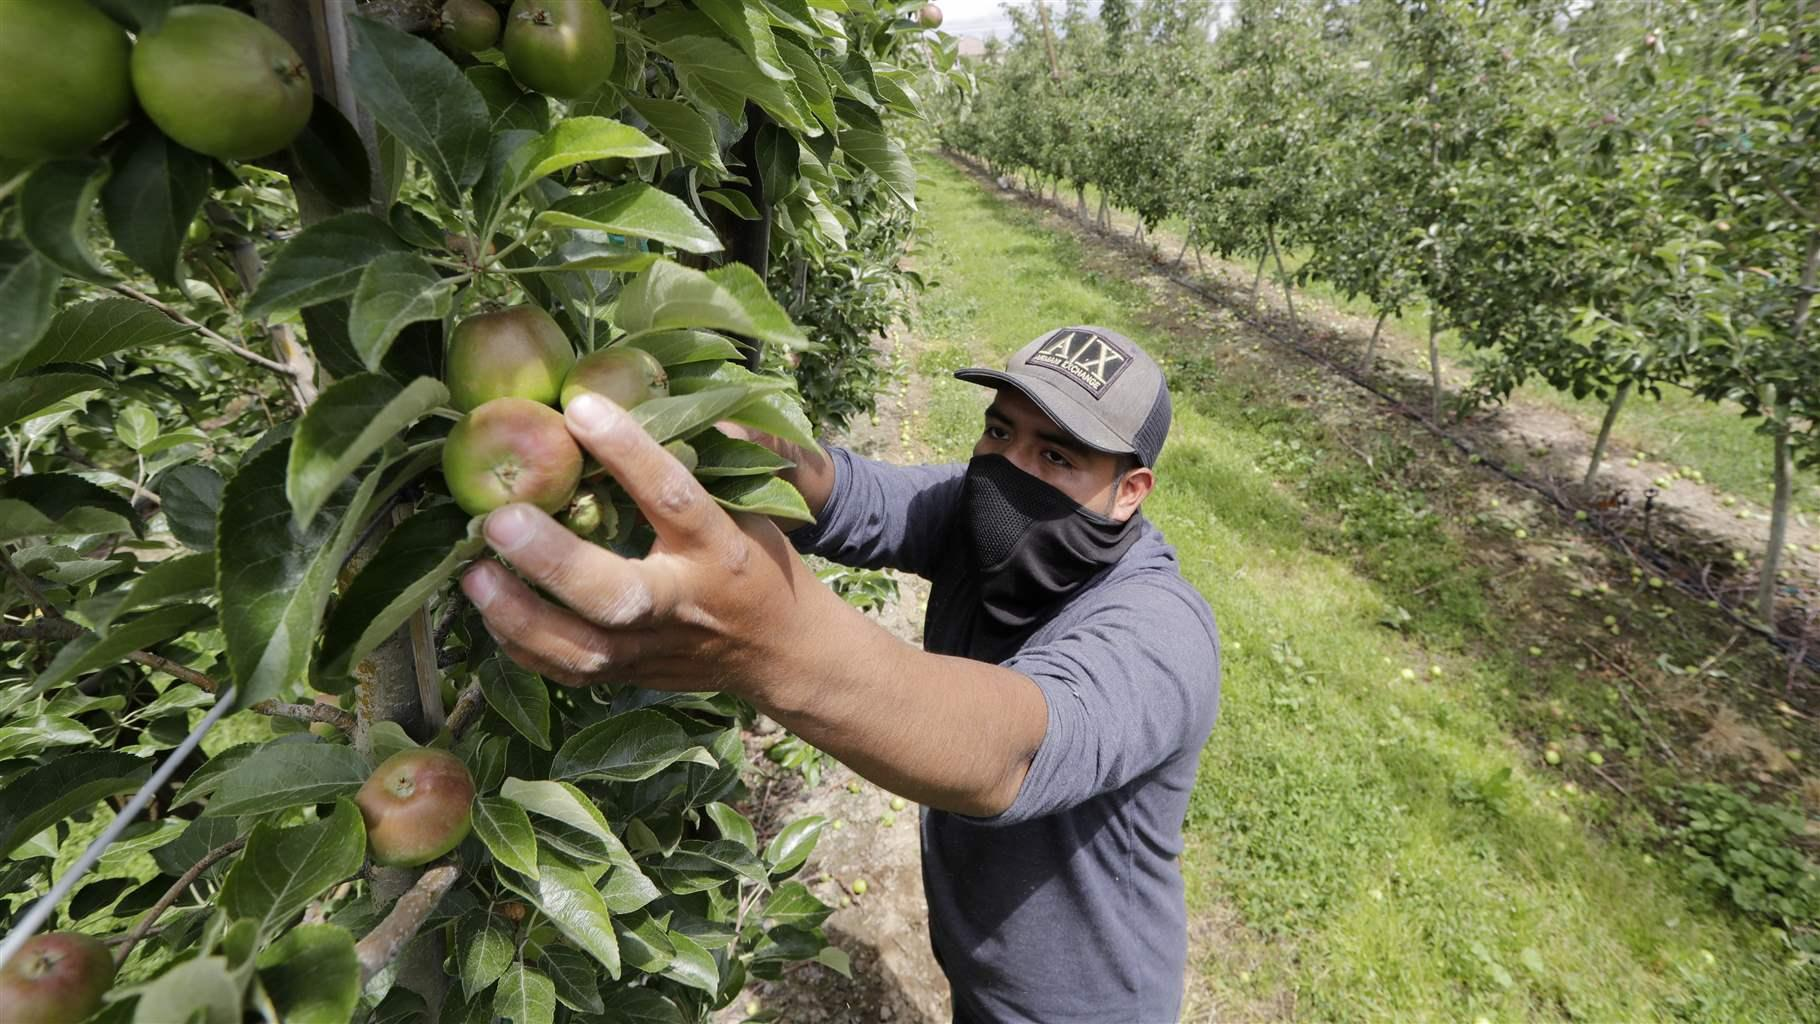 Struggling Farmers Work With Overwhelmed Food Banks to Stay Afloat